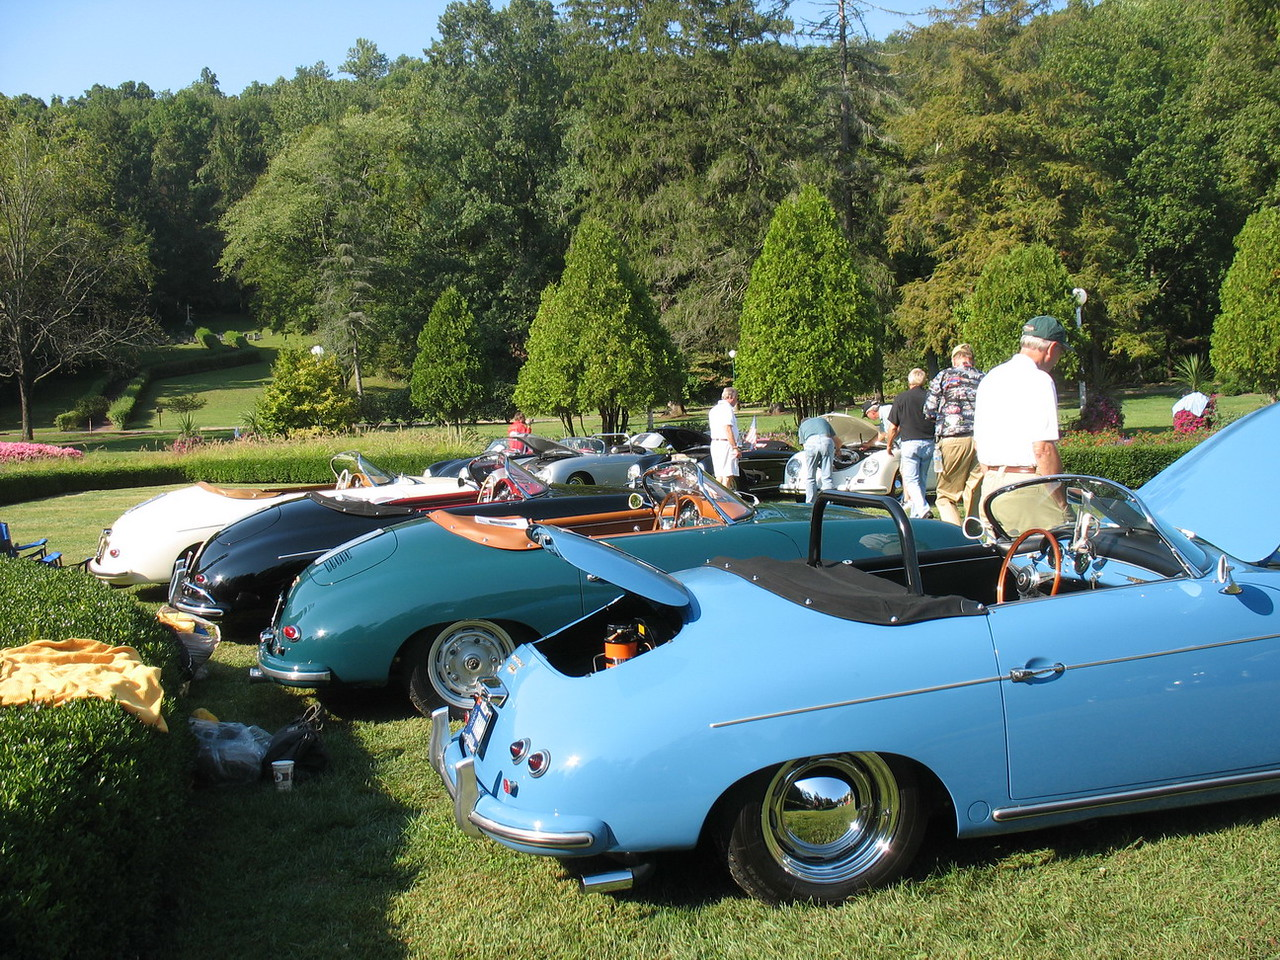 Other cars in the car show.